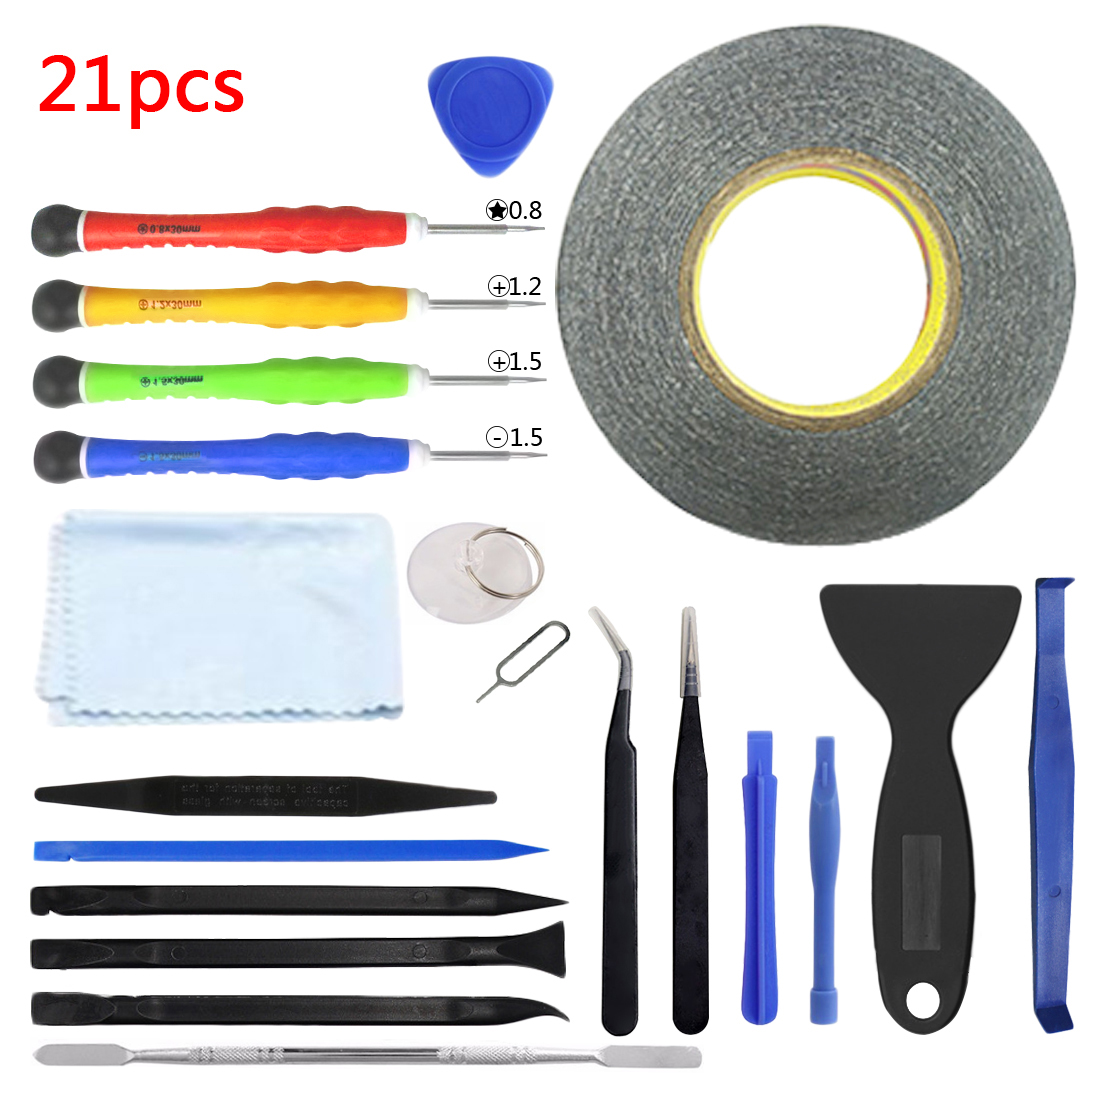 Hand Tool 21pcs DIY Phone Repair Kit Opening Pry Tool Screwdriver Set With Tape for iPhone6/6s/7 for Ipad Screen Replacement ...